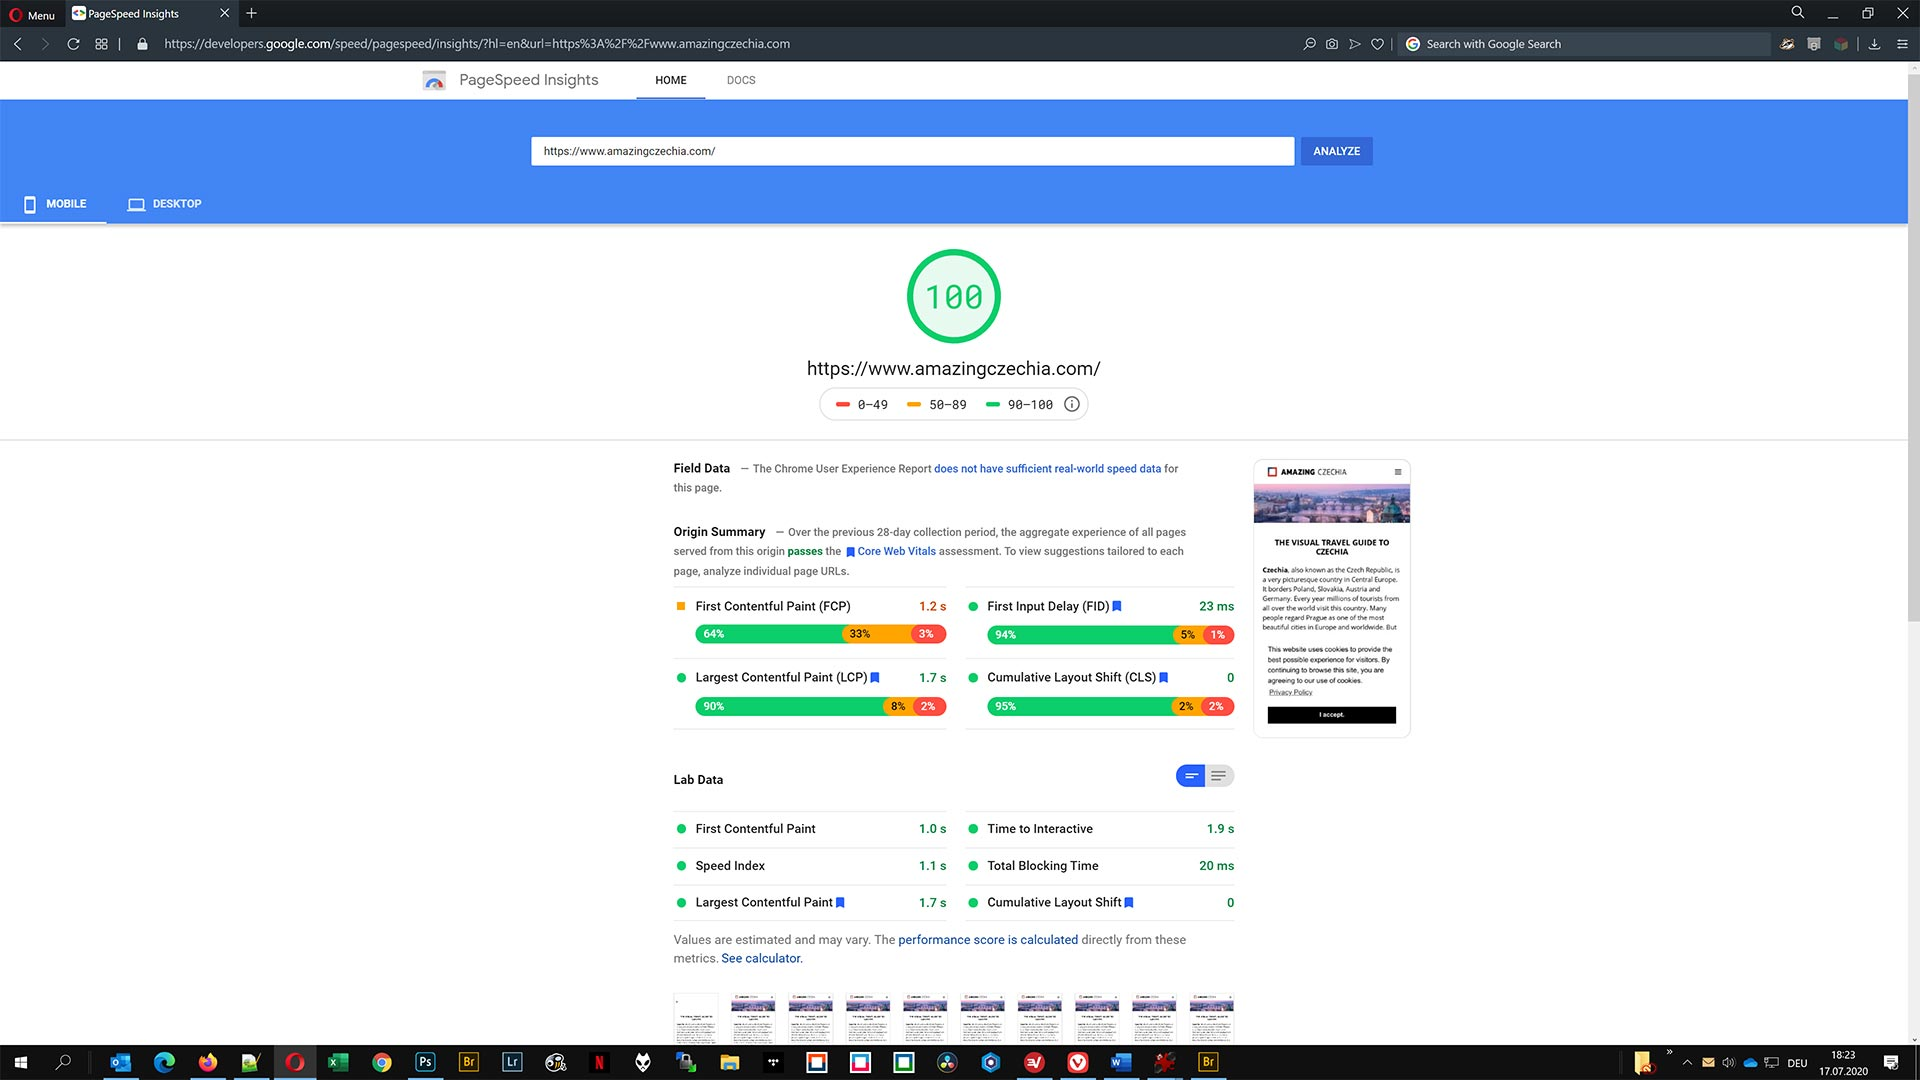 Google PageSpeed Insights Score